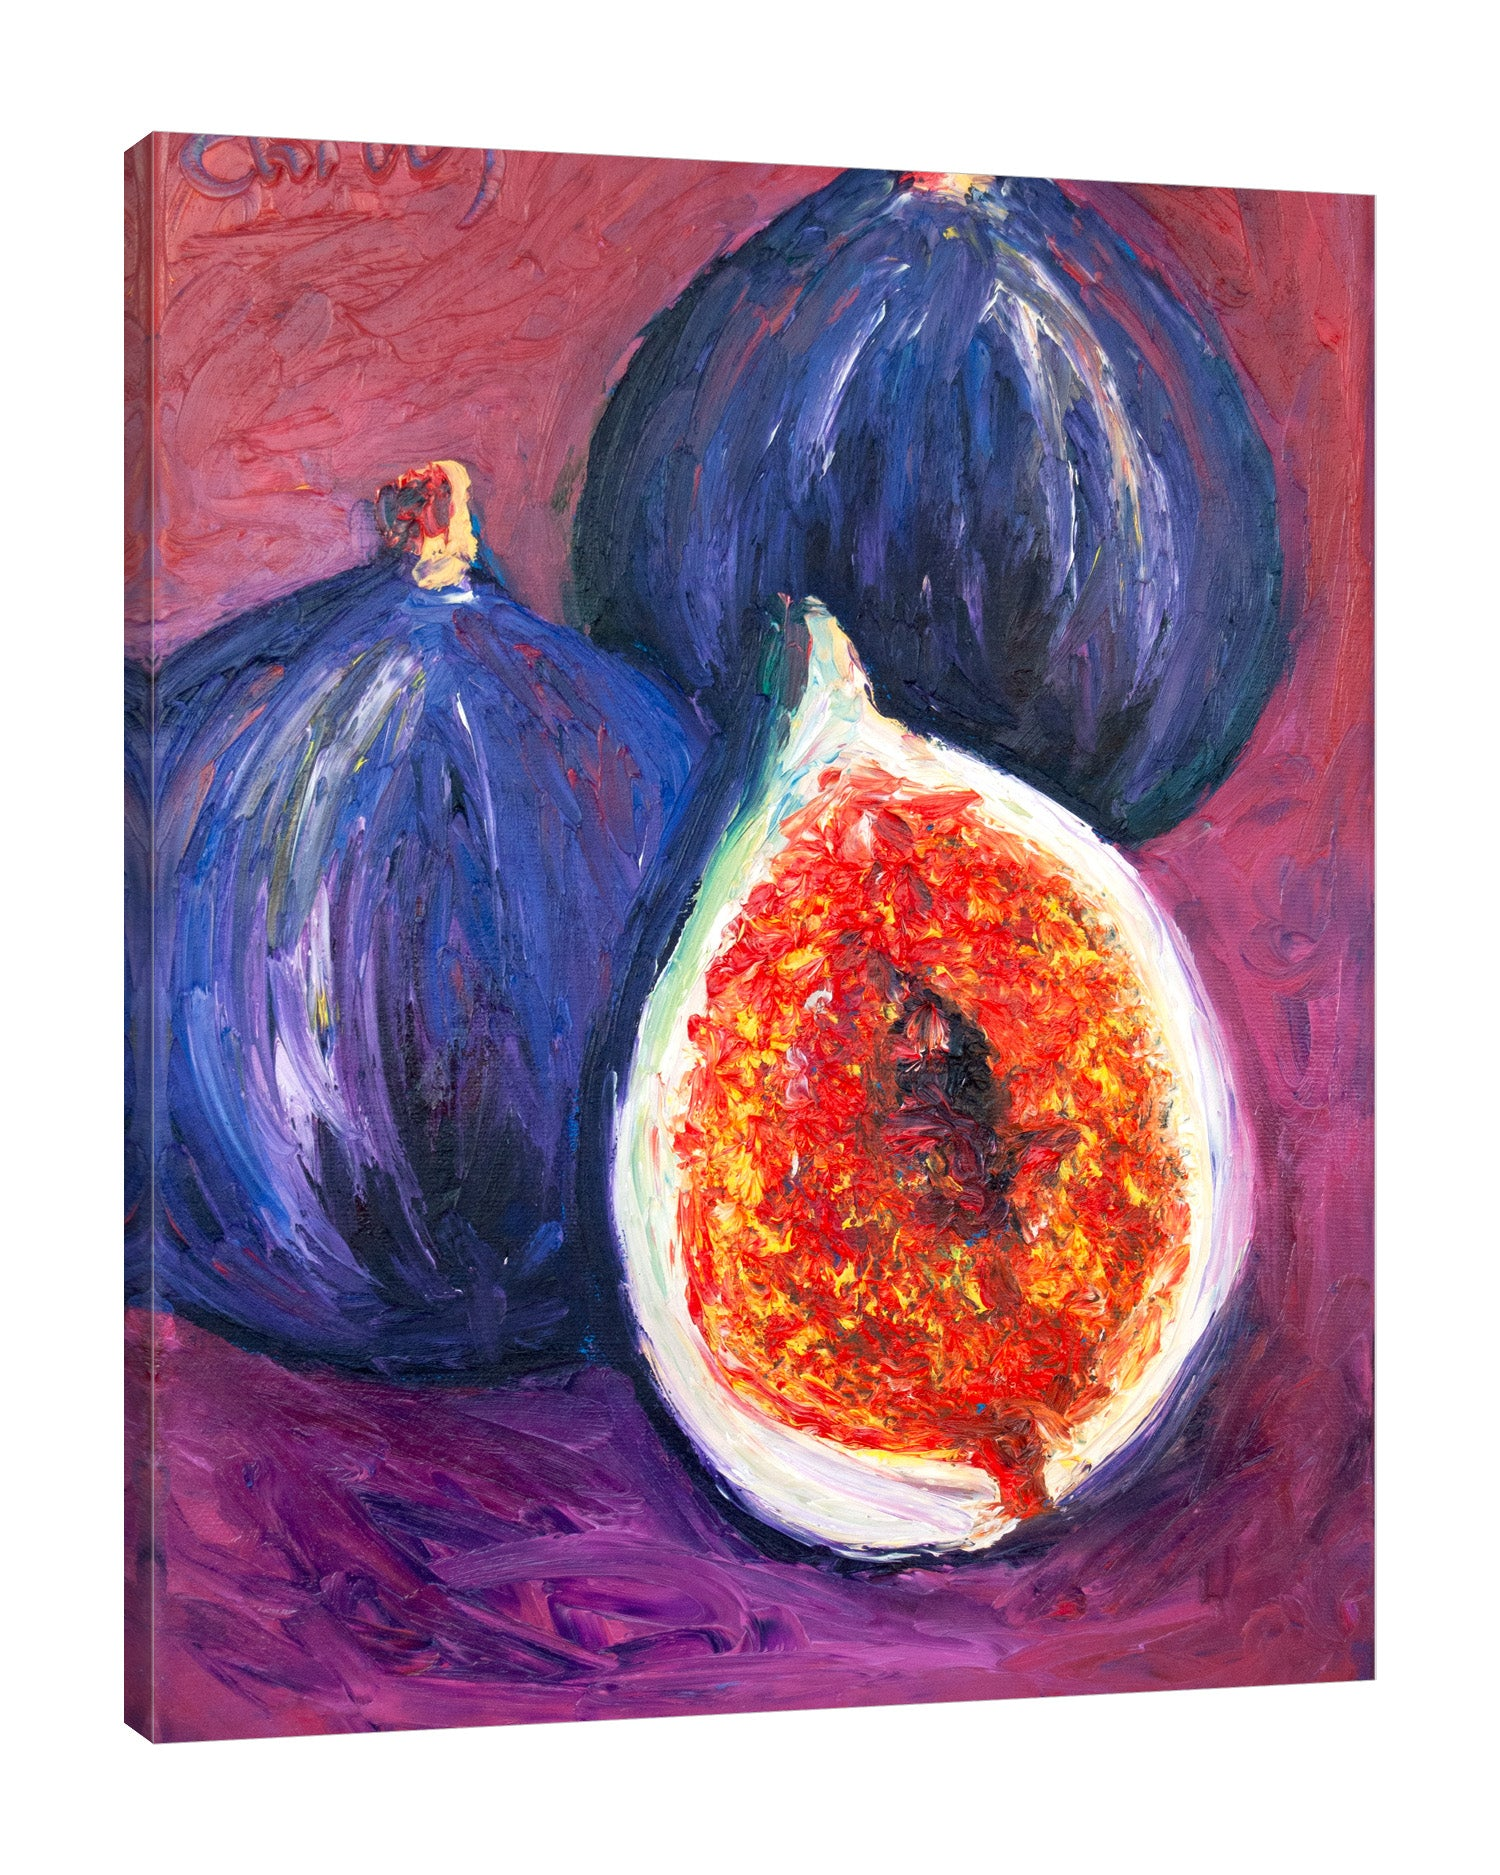 Chiara-Magni,Modern & Contemporary,Food & Beverage,Finger-paint,fig,figs,food,fruits,vegetables,violet,blue,red,yellow,orange,